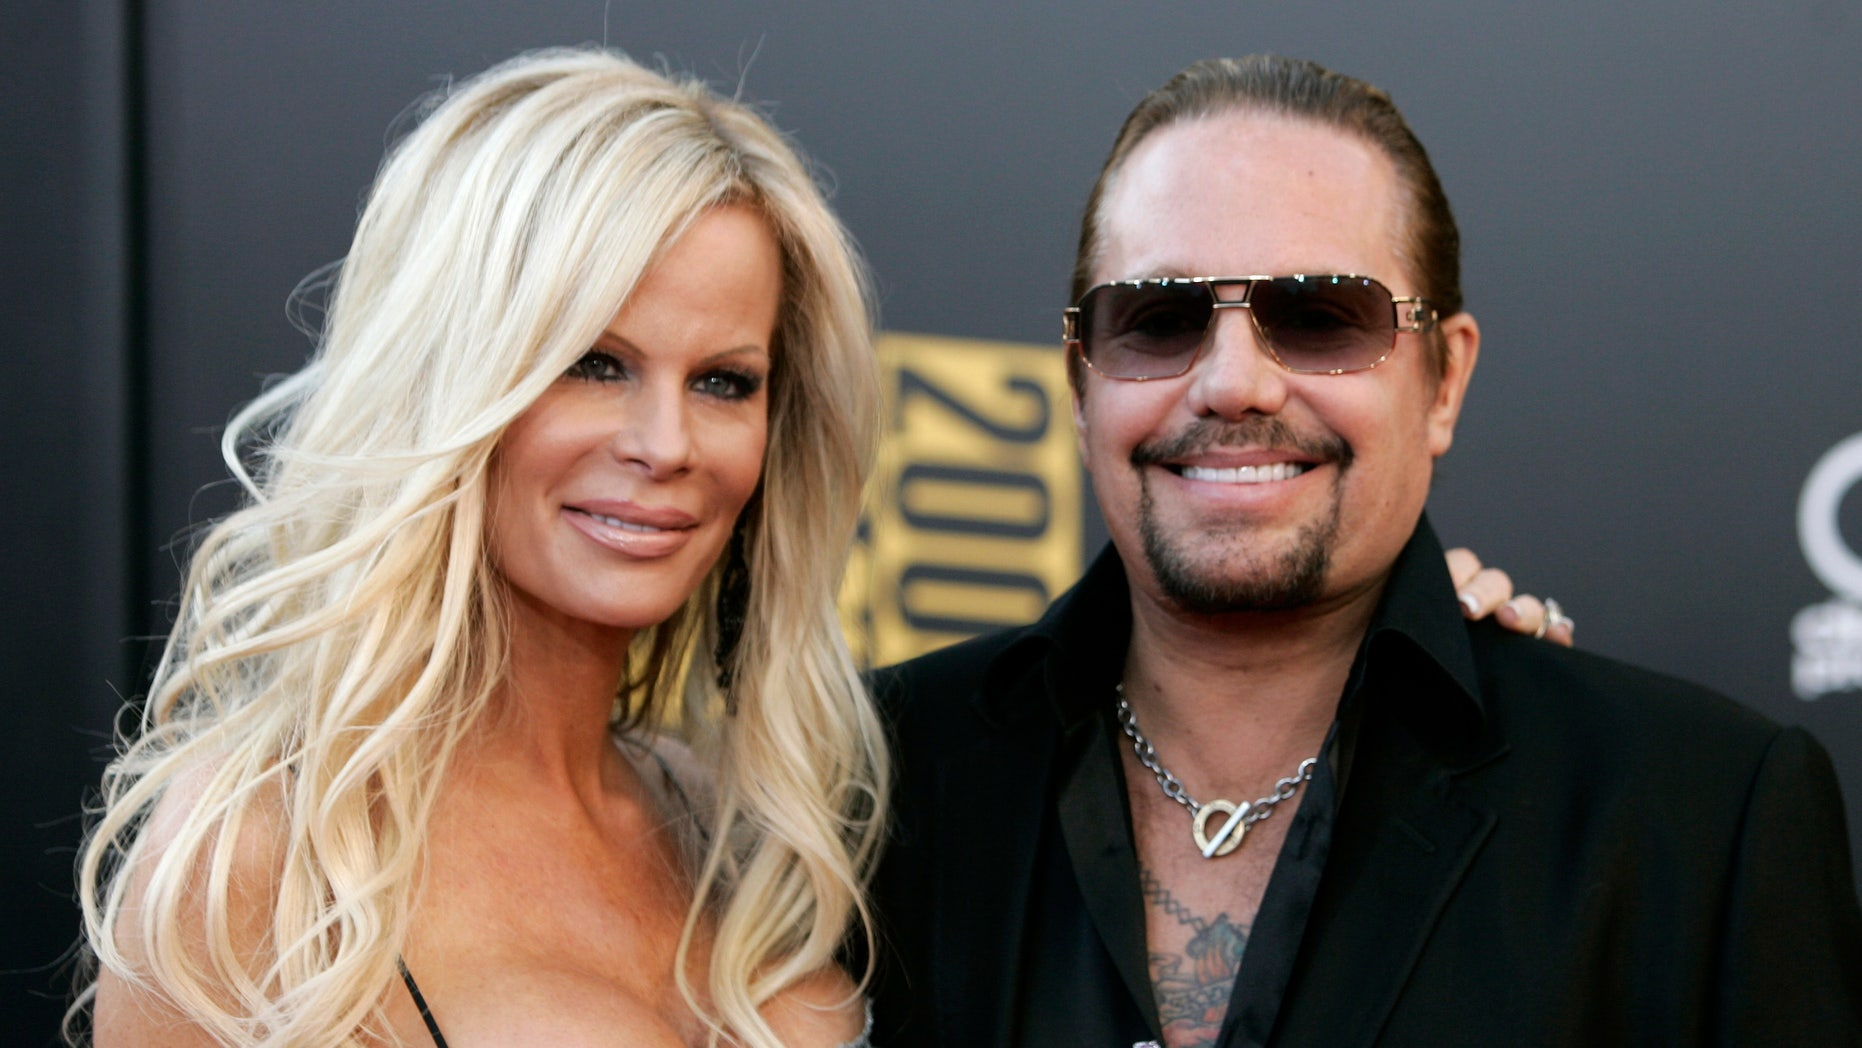 November 22, 2009: Motley Crue singer Vince Neil and his wife Lia arrive at the 2009 American Music Awards in Los Angeles, California. Neil was arrested early Monday on a drunk driving charge.